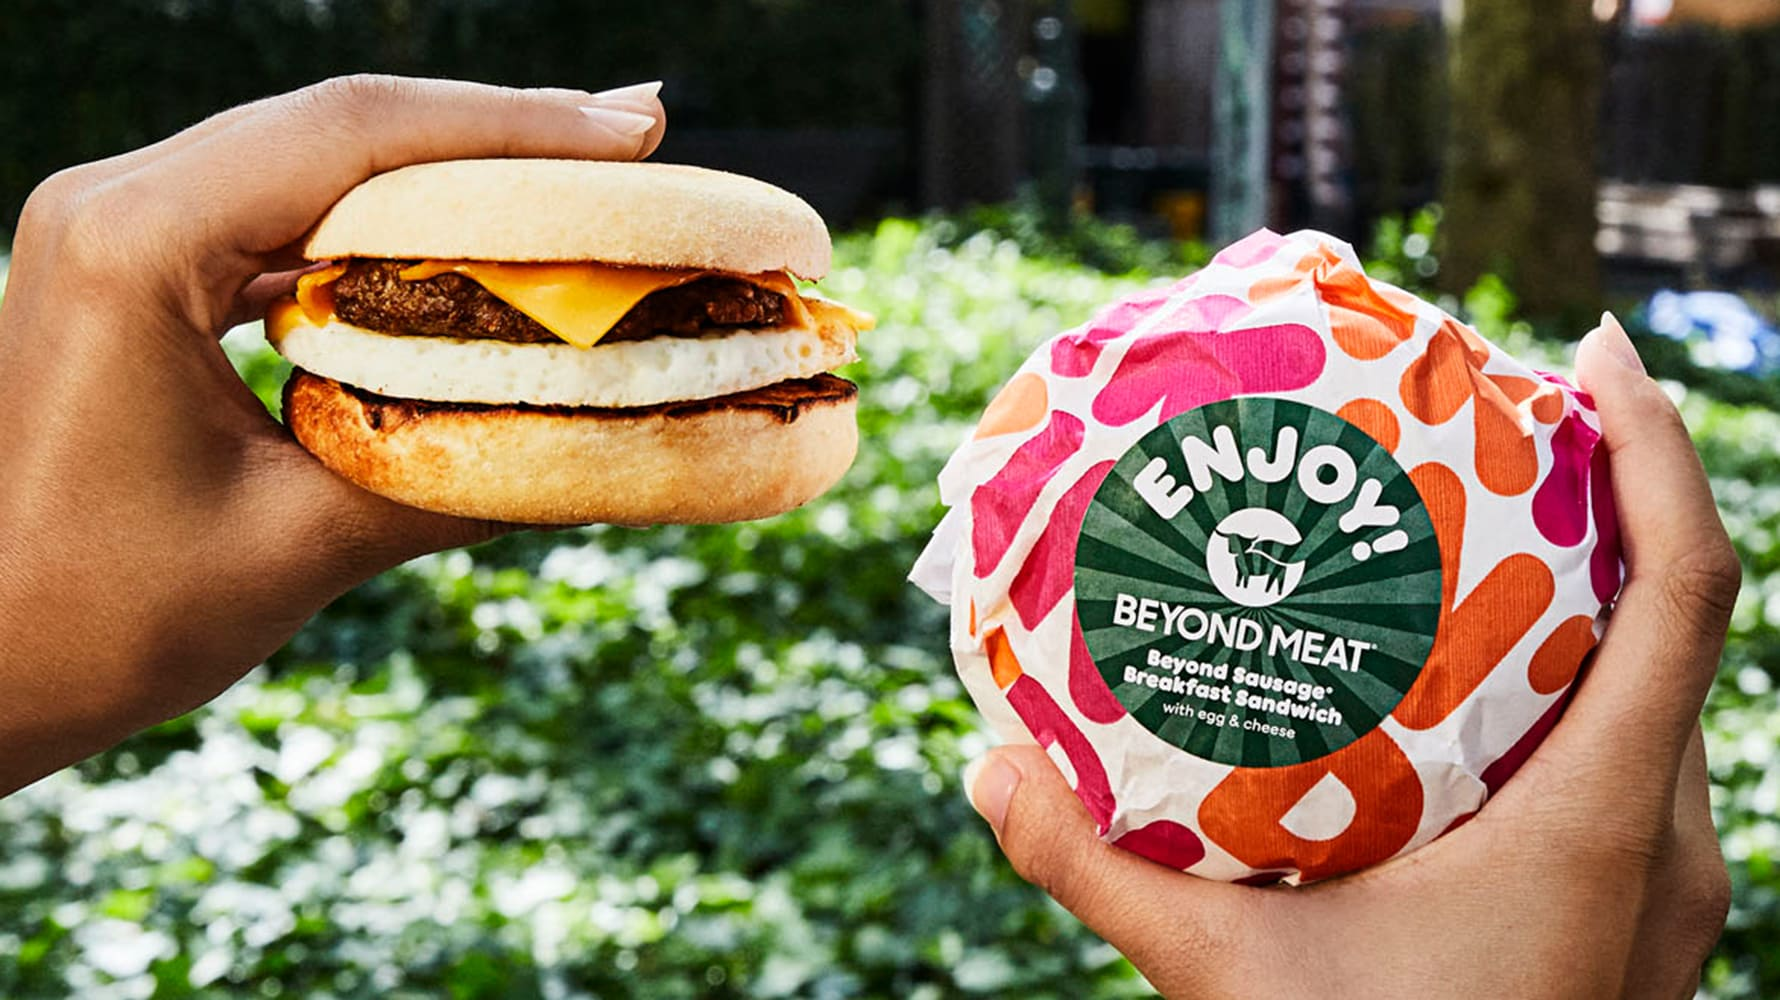 Sustainable Dunkin' Donuts Beyond Sausage Breakfast Sandwich